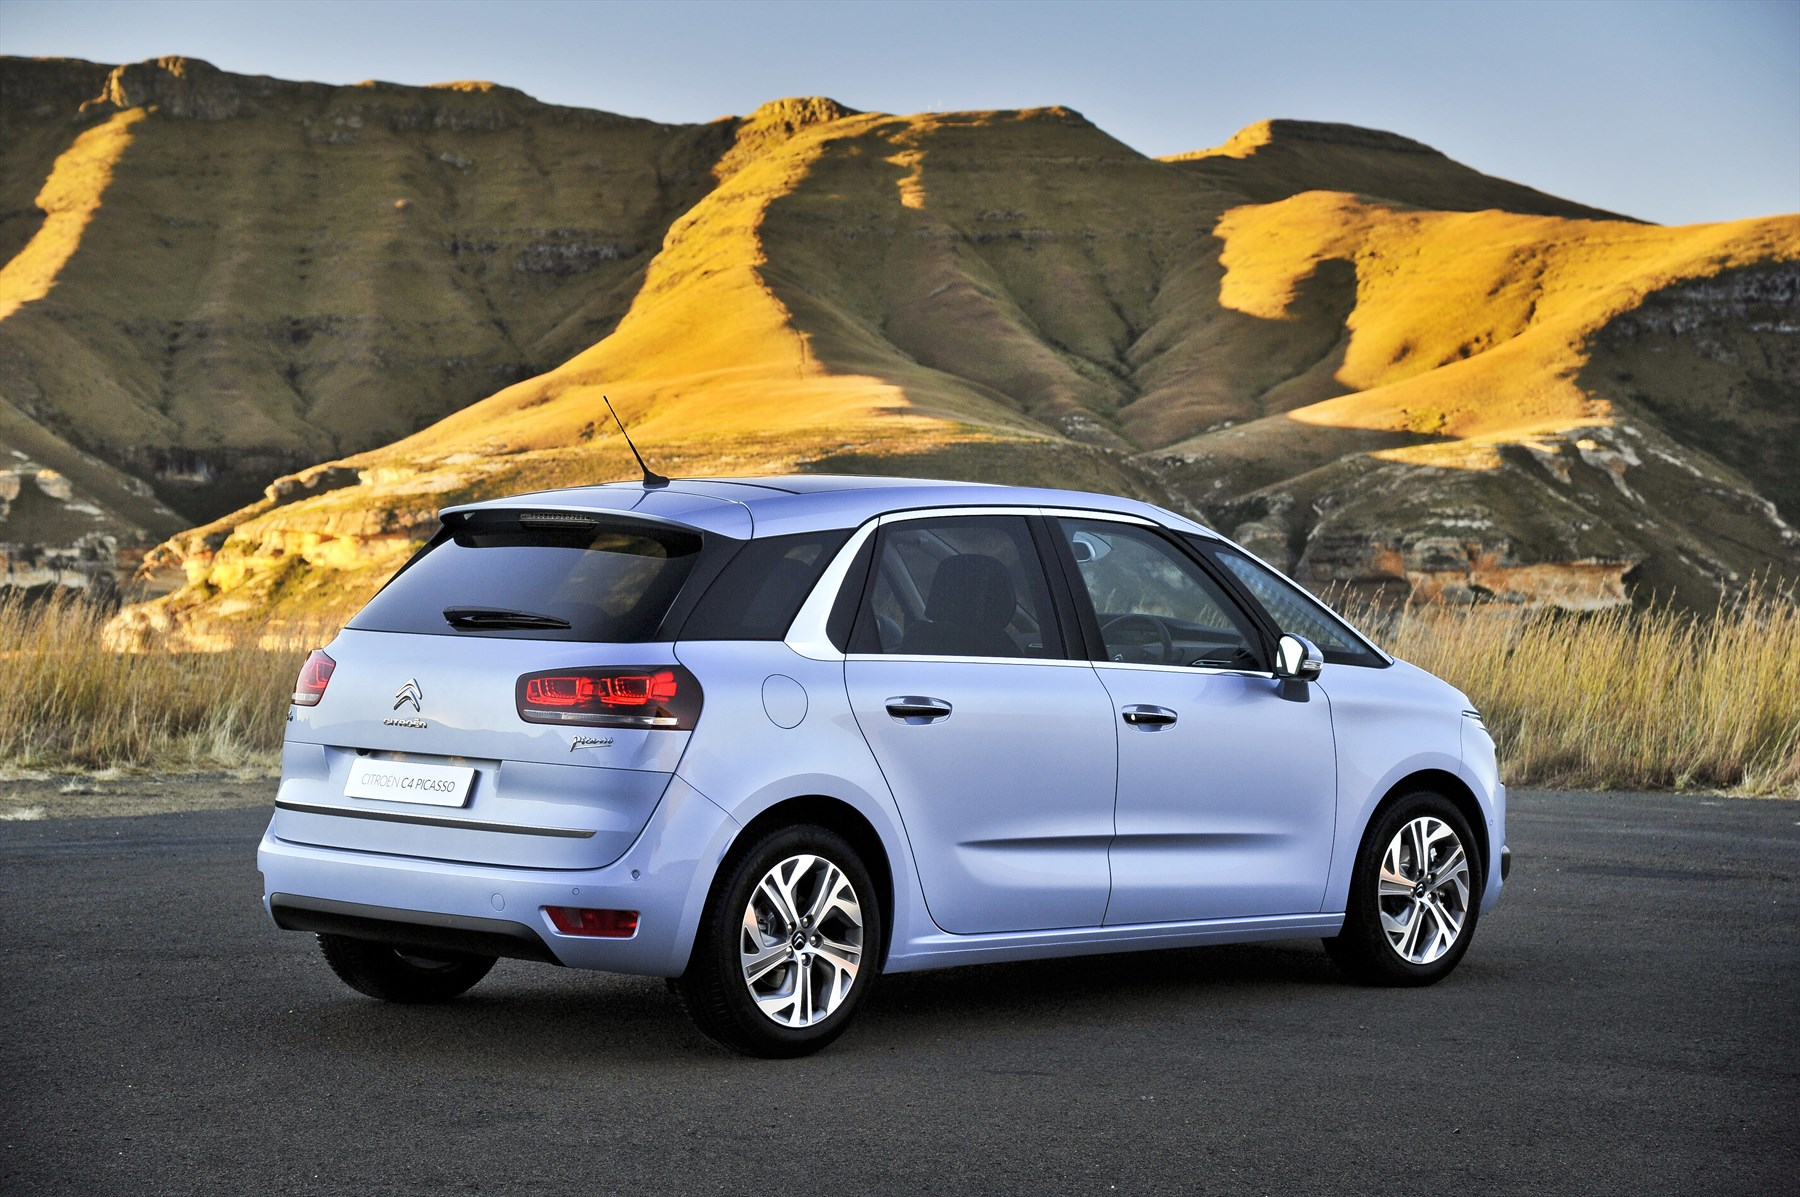 citroen c4 picasso 2014 new car review surf4cars. Black Bedroom Furniture Sets. Home Design Ideas